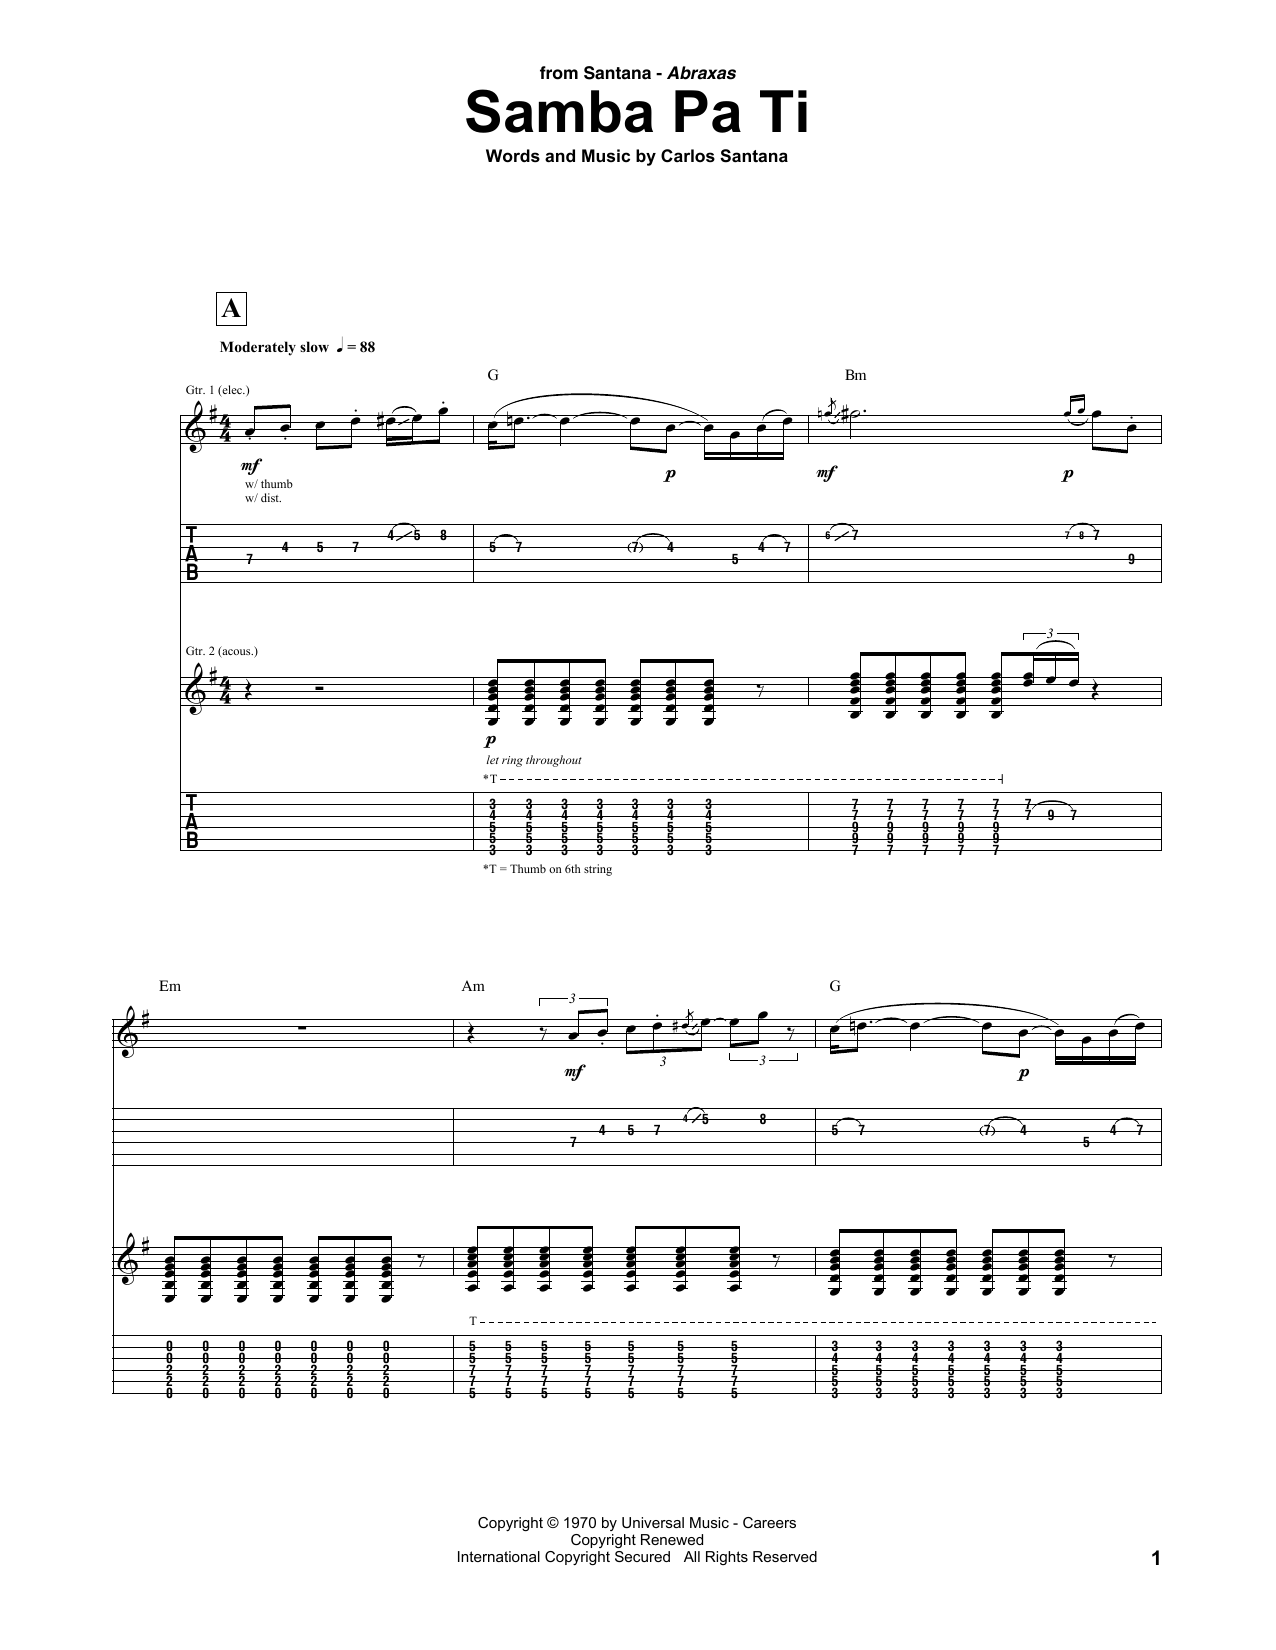 Santana Samba Pa Ti Sheet Music Notes Chords Printable Pop